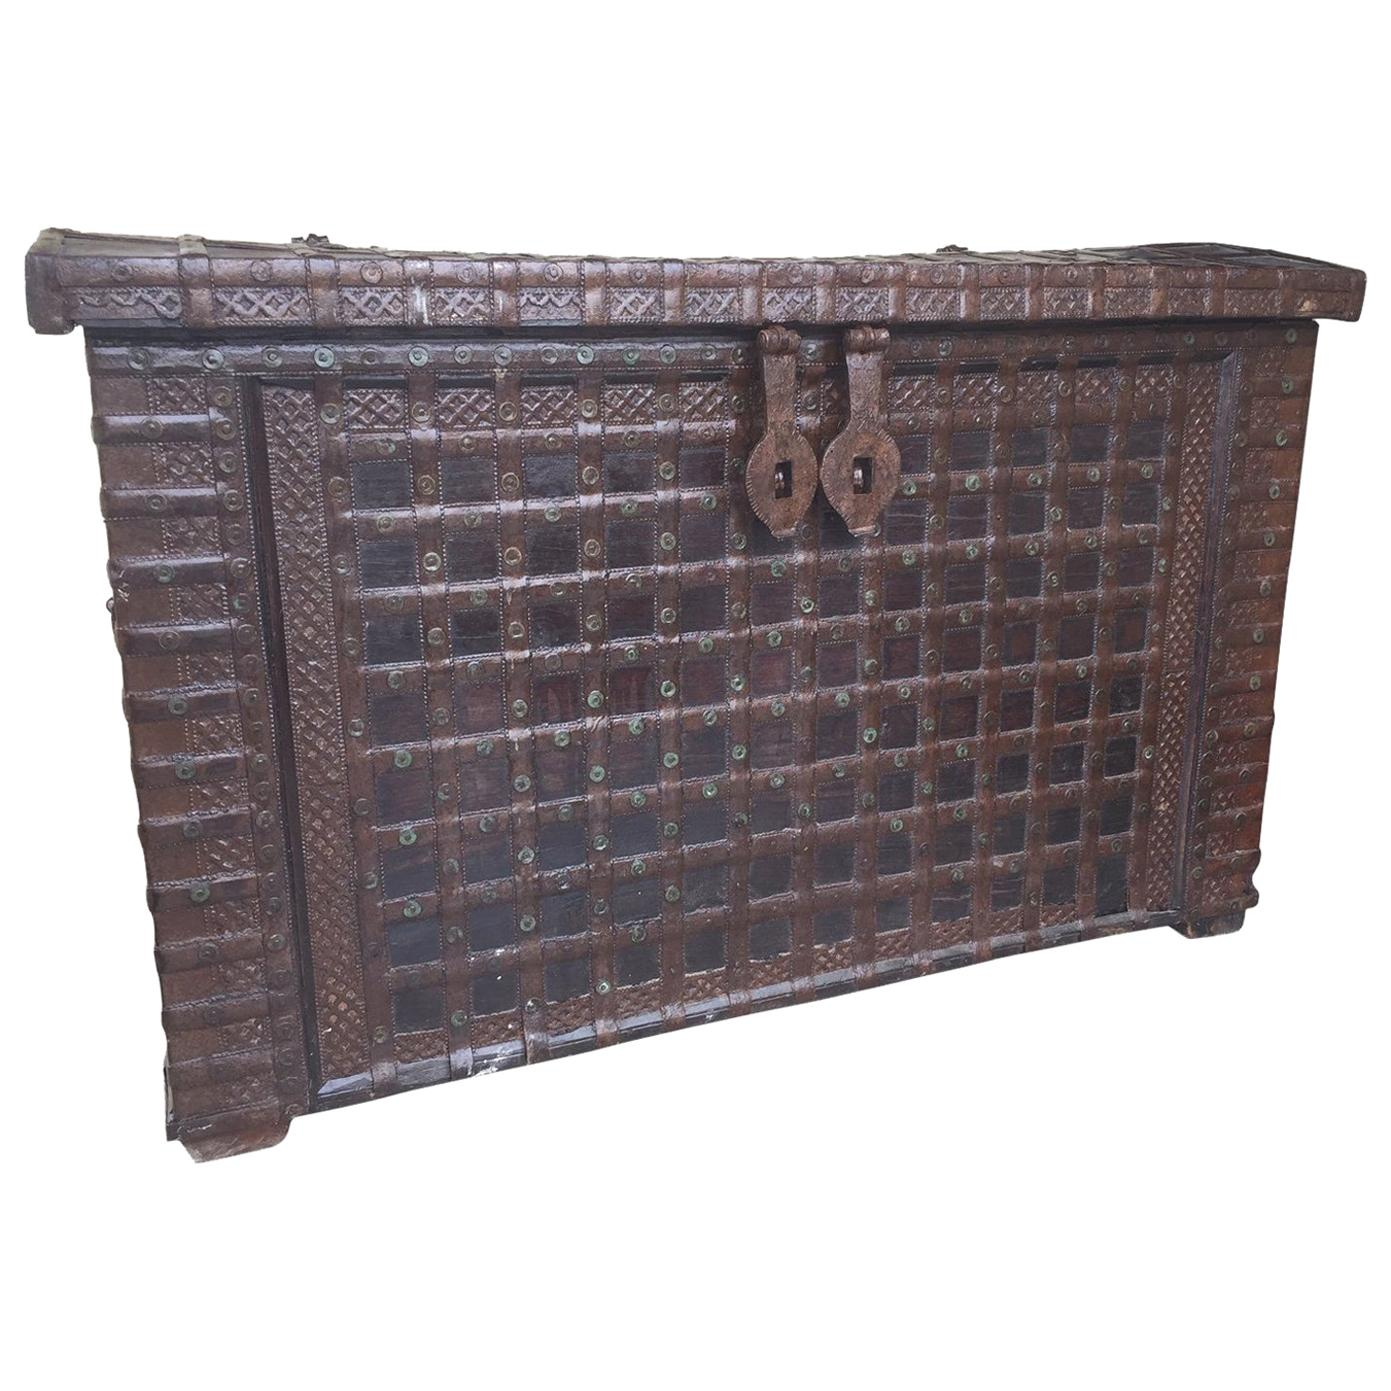 20th Century Indian Large Iron and Wood Trunk, 1900s